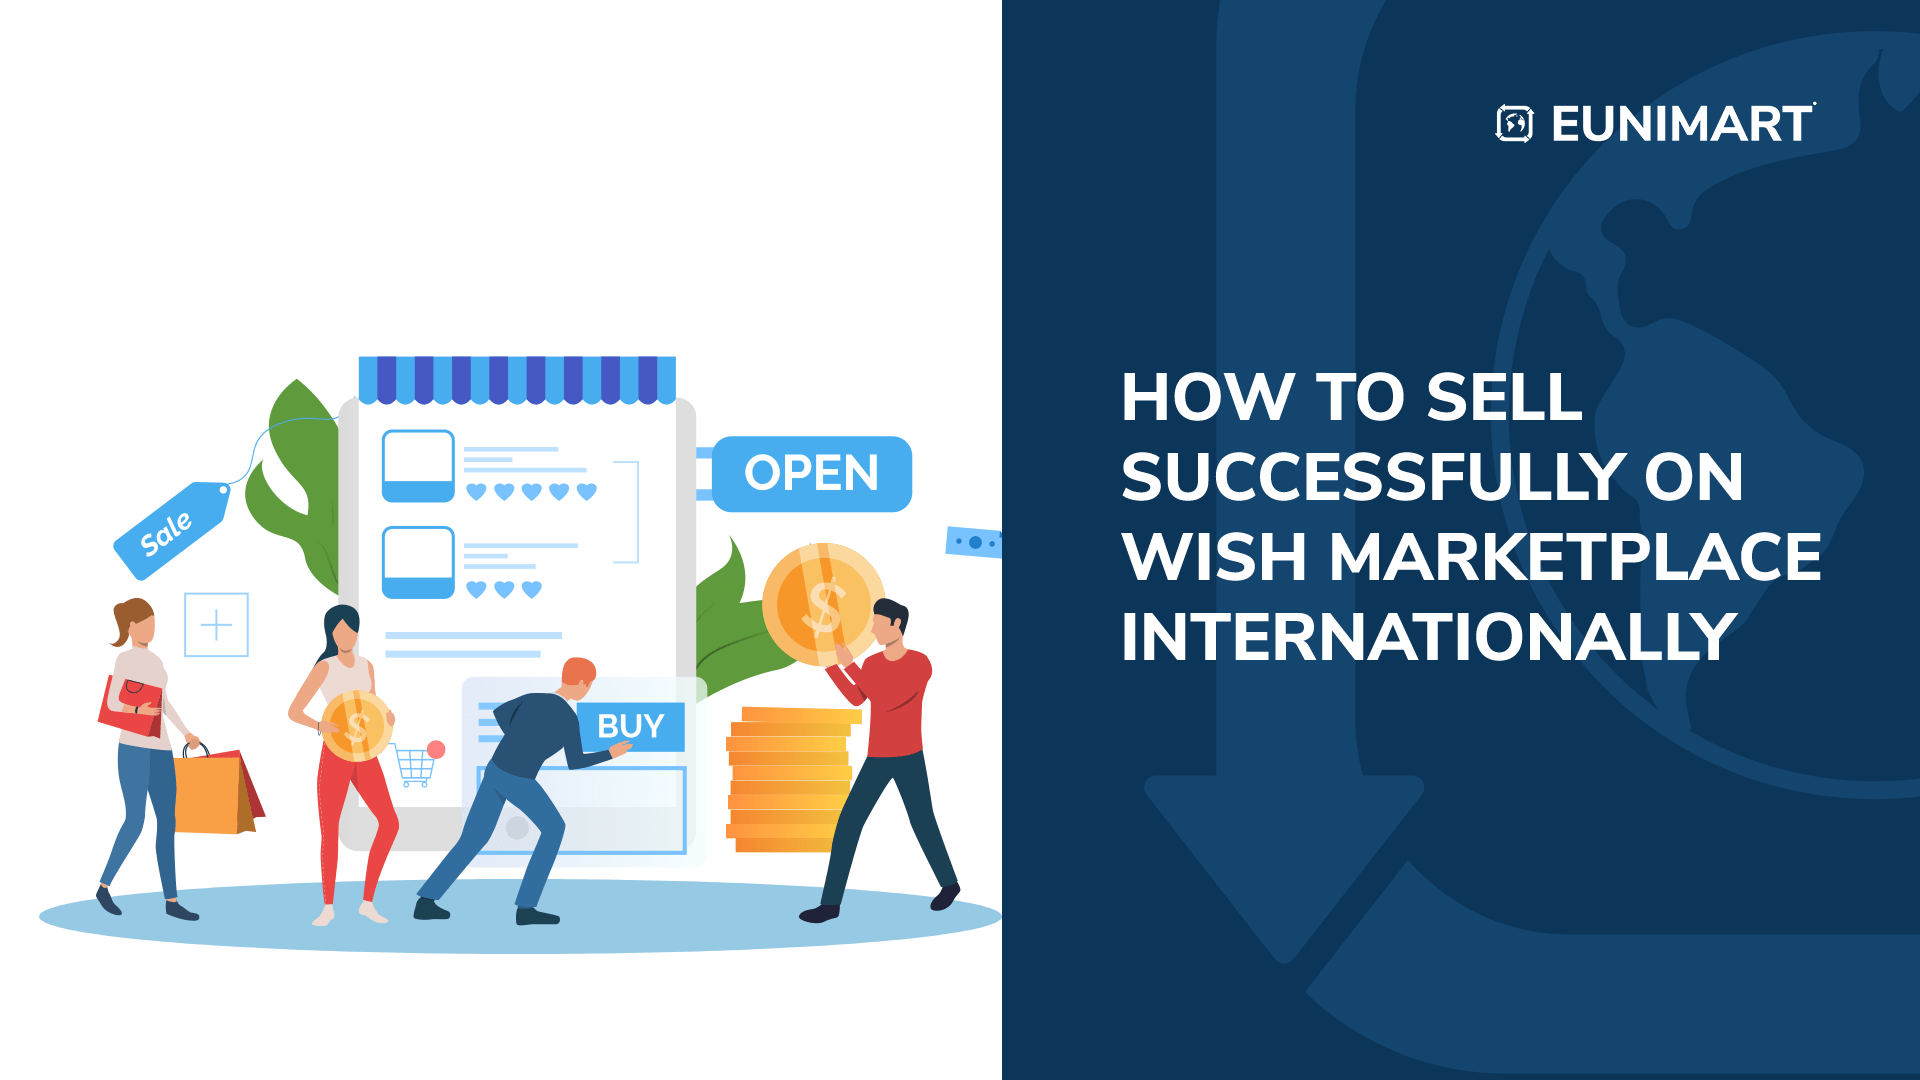 How to sell successfully on Wish marketplace internationally